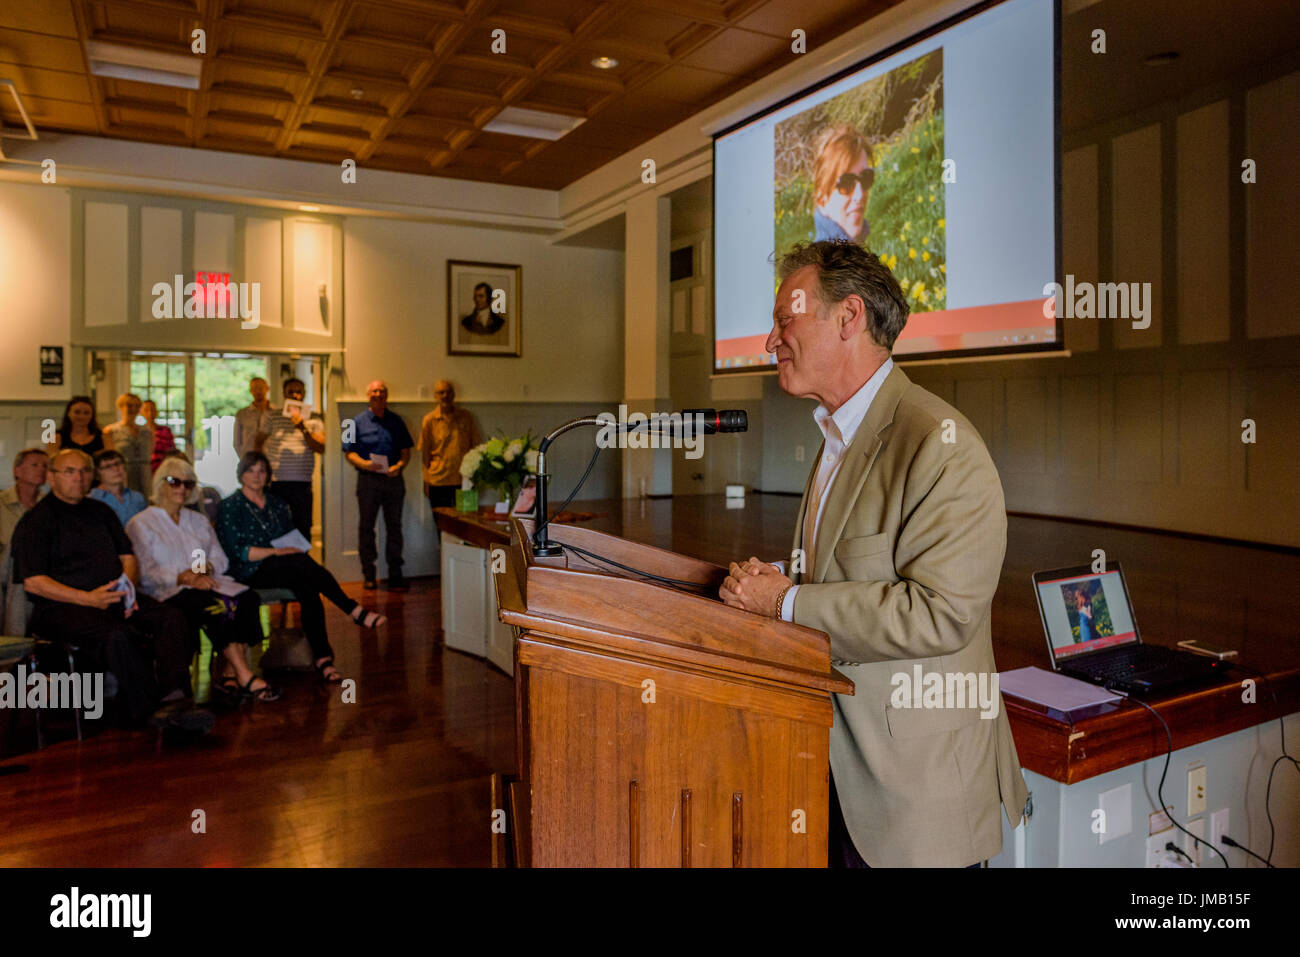 Vancouver, Canada. 26th July, 2017. British Columbia's Environment Minister, George Heyman, speaks at the Celebration of Life for revered environmentalist and Wilderness Committee Director Gwen Barlee who passed away on June 21, 2017. Credit: Michael Wheatley/Alamy Live News - Stock Image